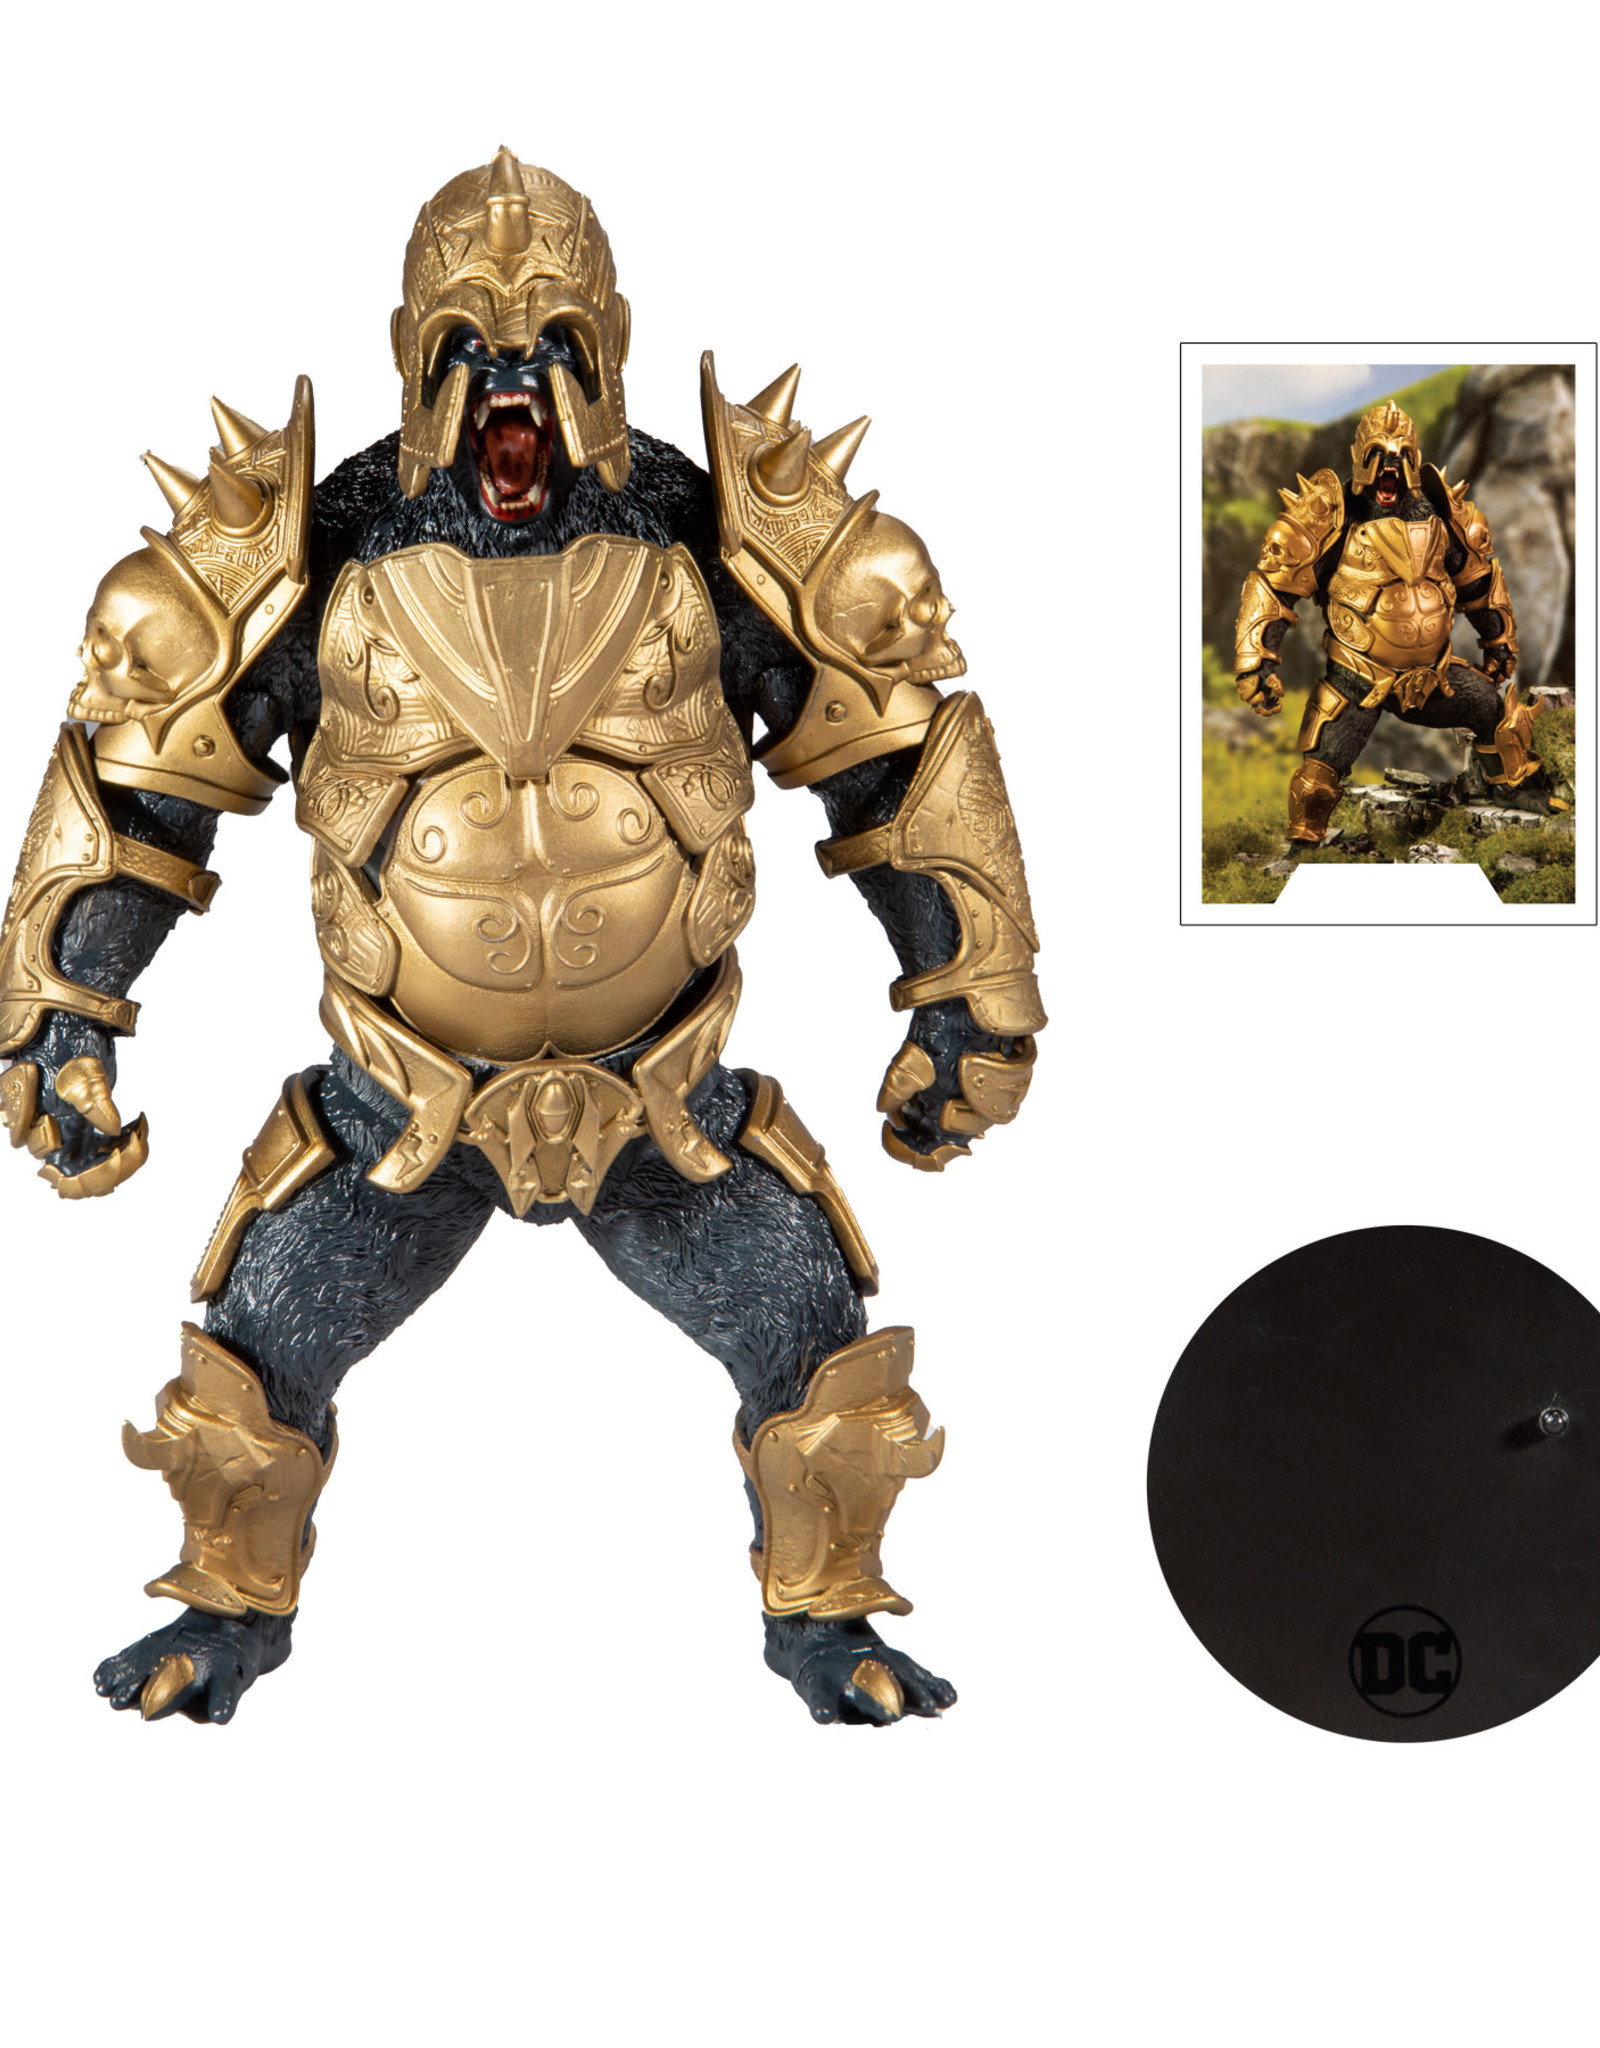 McFarlane Toys DC Gaming 7in Scale Gorilla Grodd Action Figure